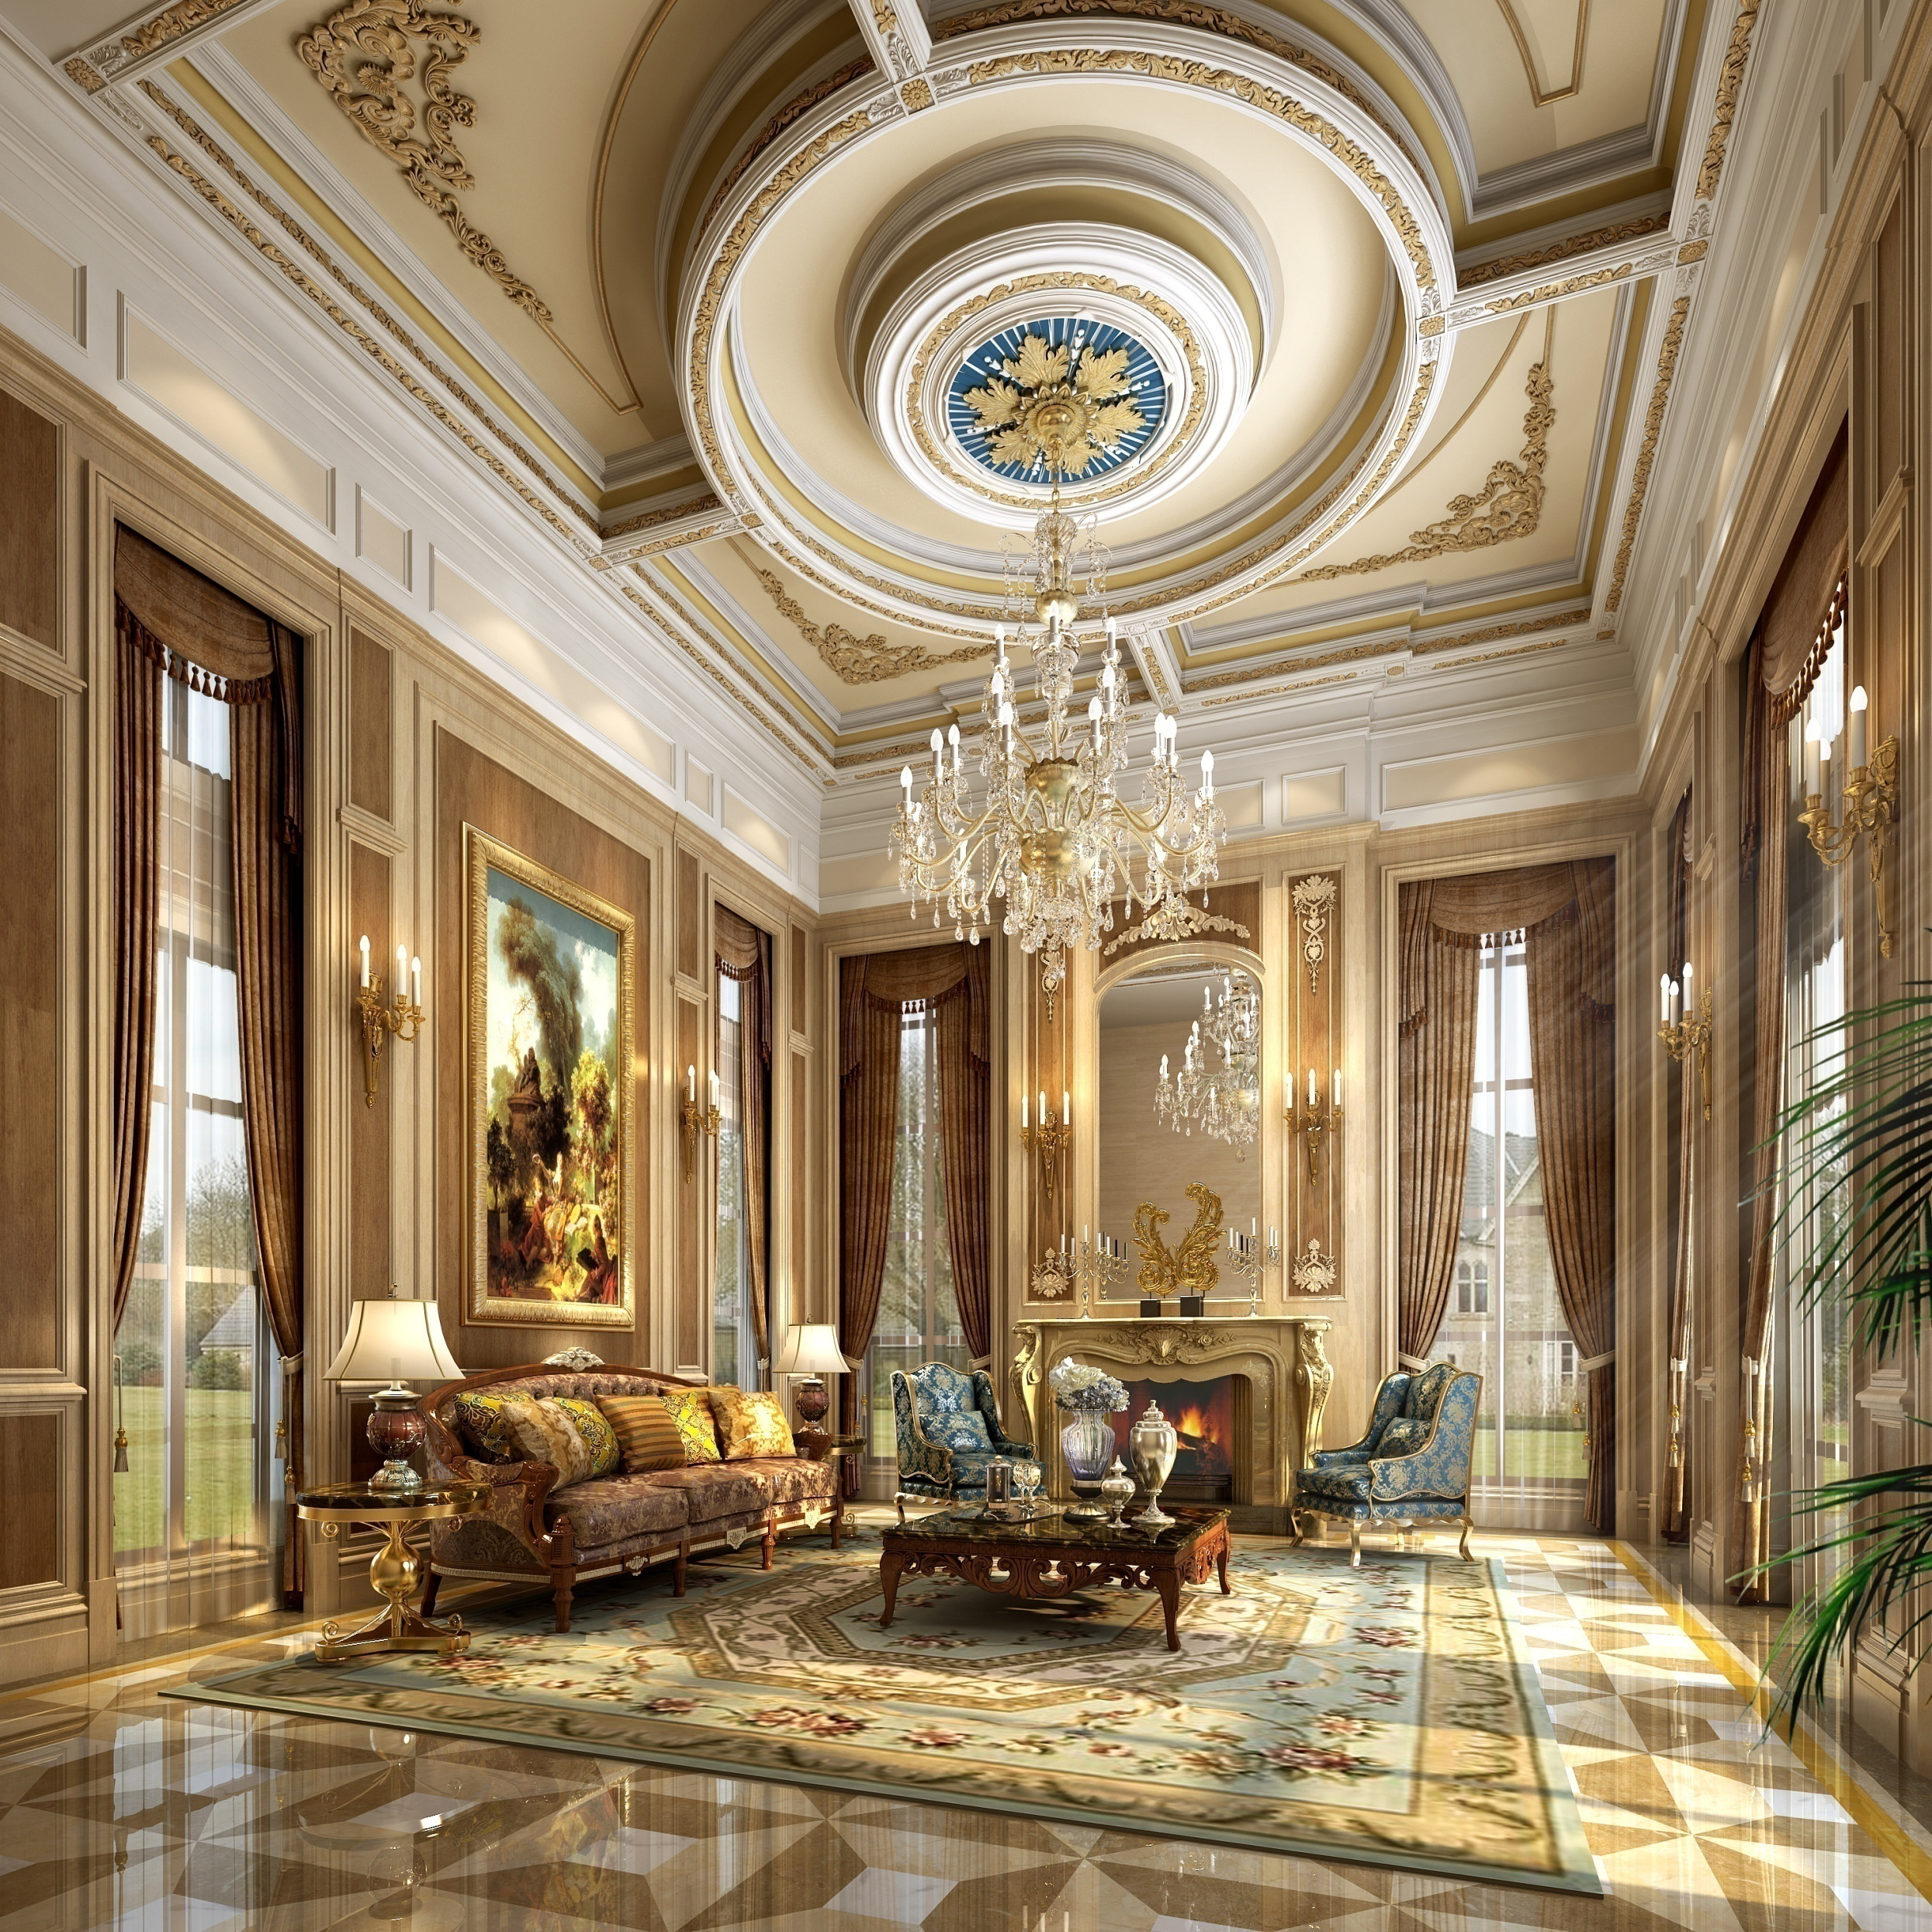 Mansion Interior, Luxury Home Decor, Luxury